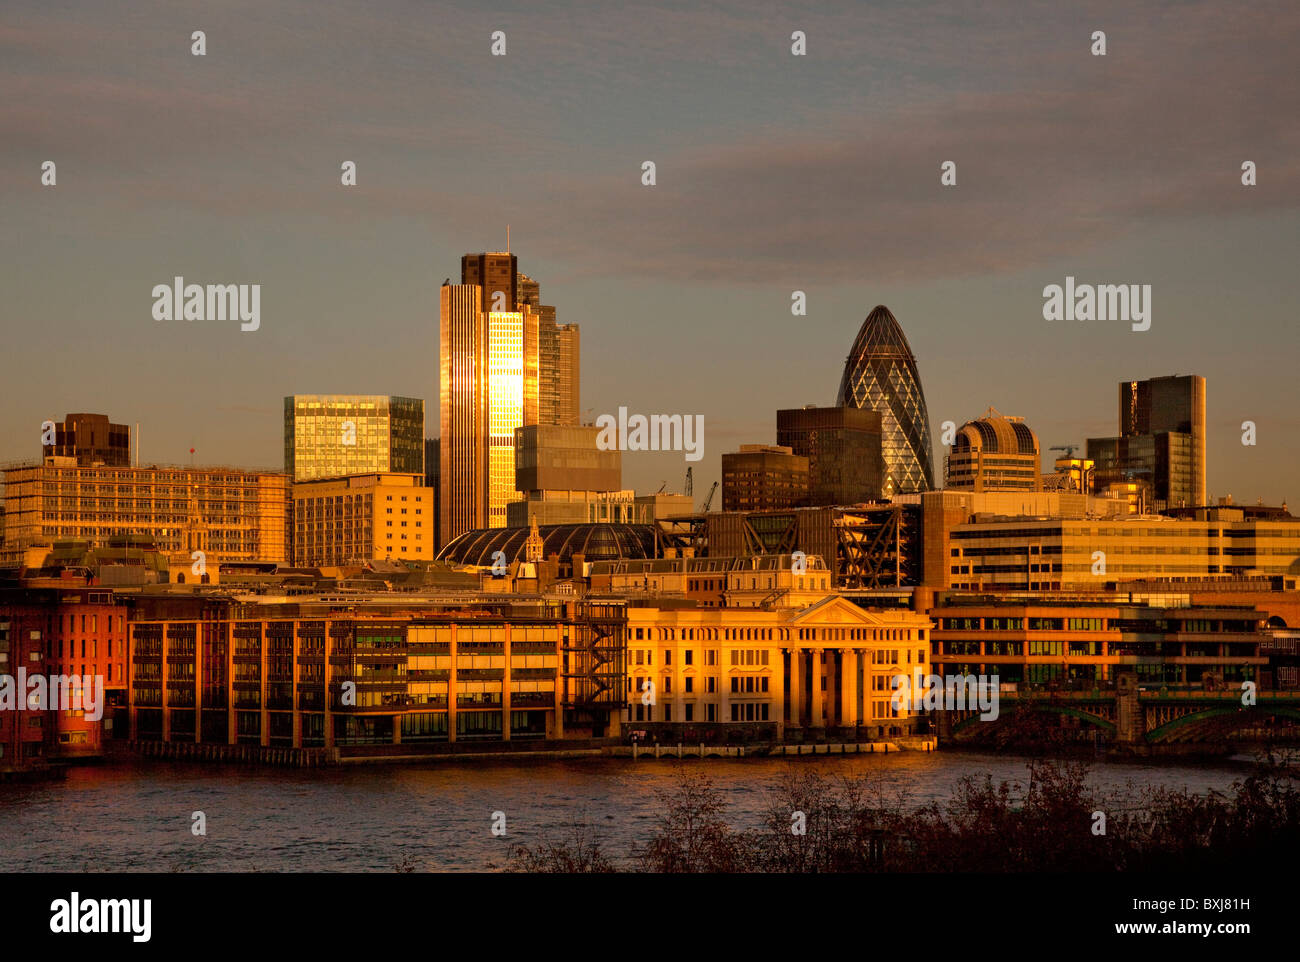 Late afternoon light on skyline of city financial district square mile, London, England - Stock Image